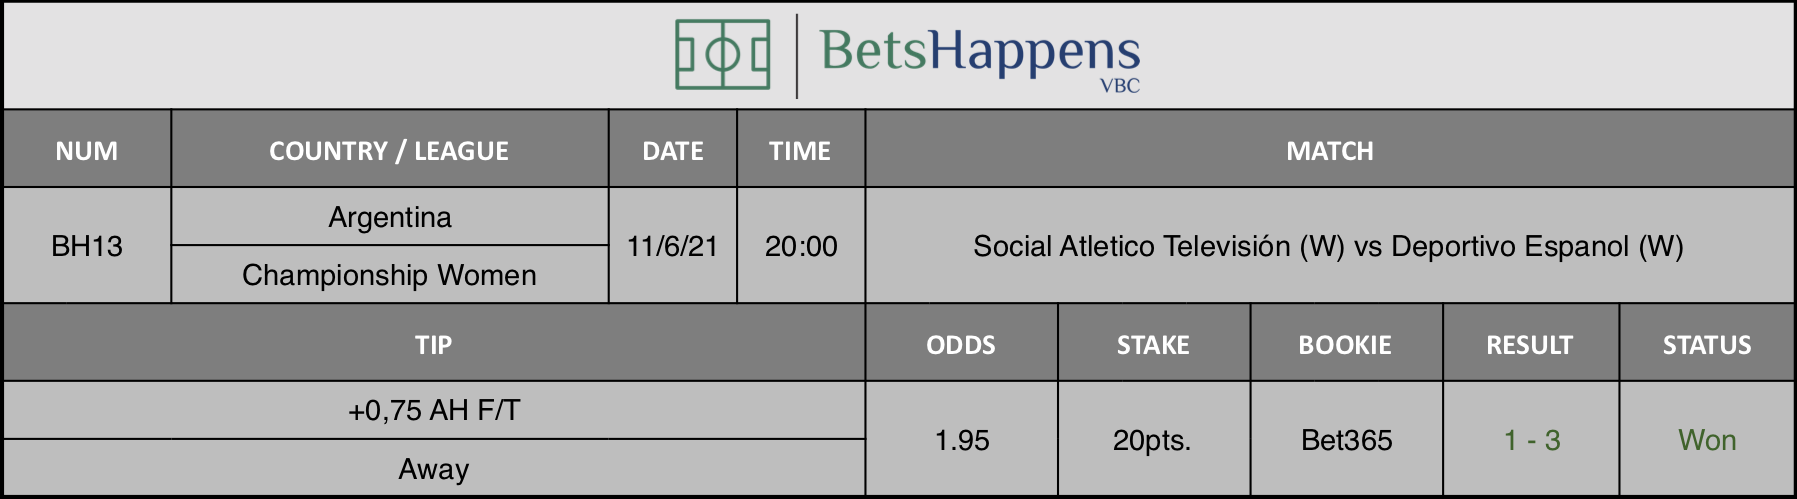 Results of our tip for the Social Atletico Televisión (W) vs Deportivo Espanol (W) Match +0,75 AH F/T Away is recommended.